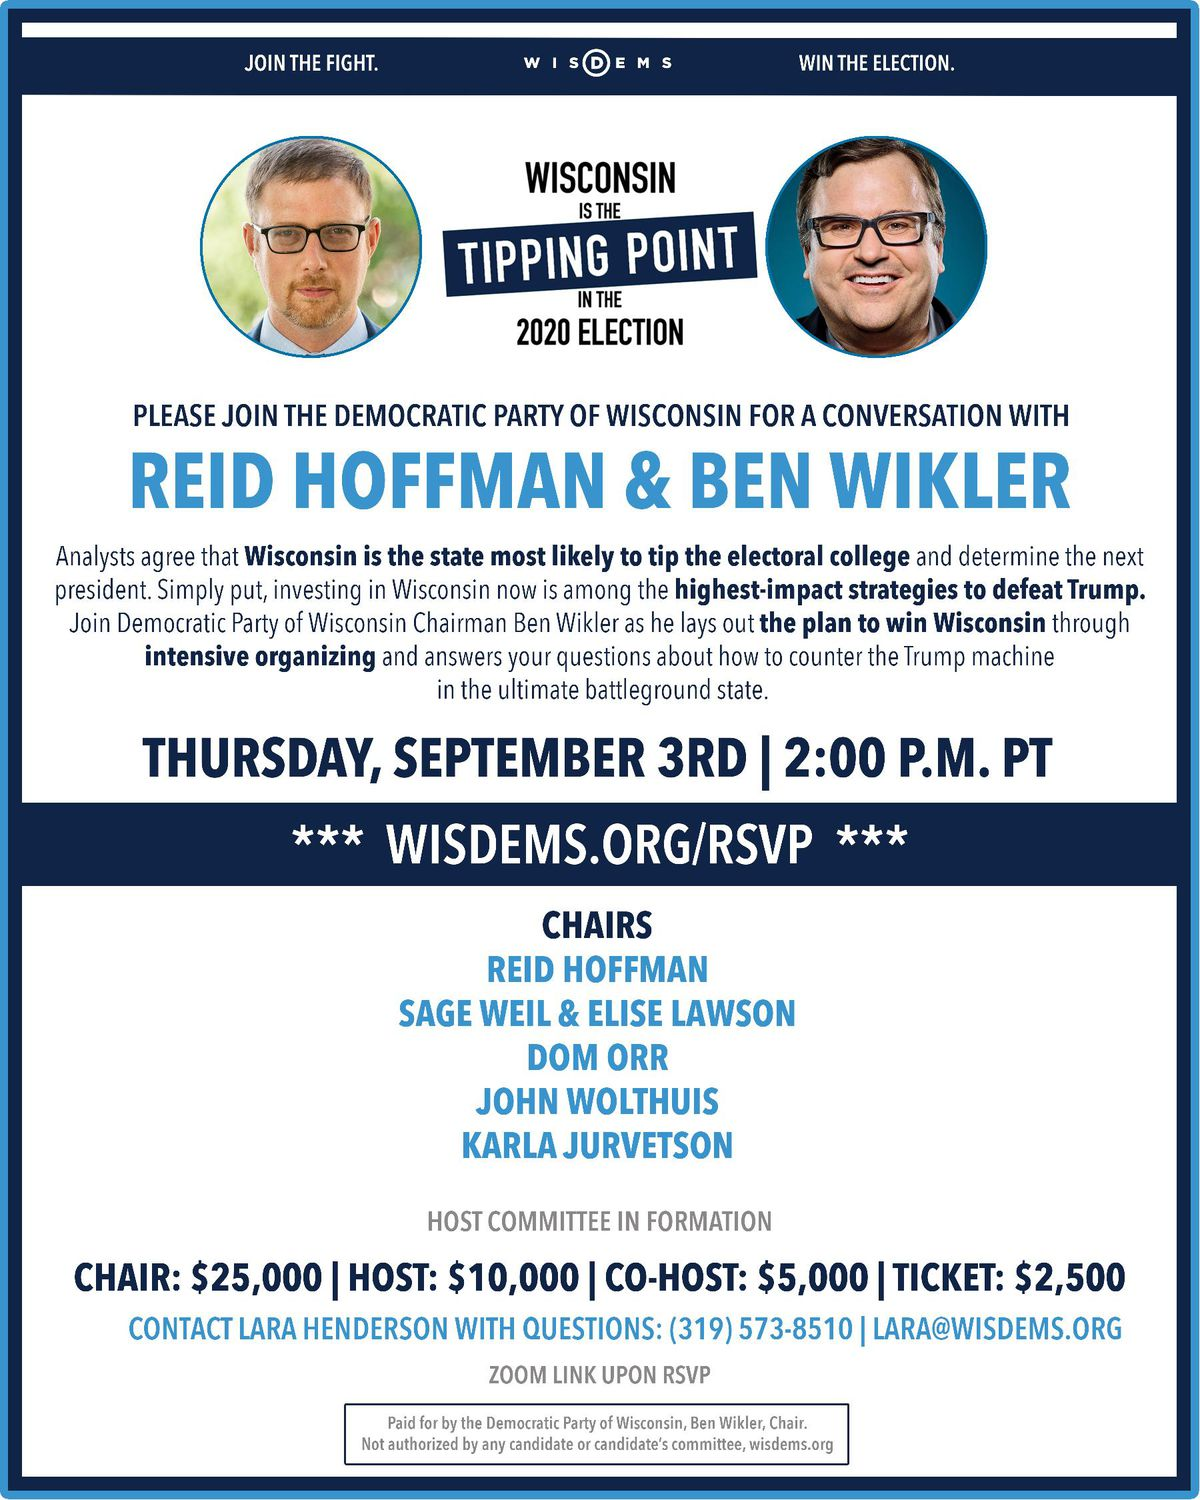 Fundraiser invitation for the Wisconsin Democratic Party featuring Reid Hoffman's name.